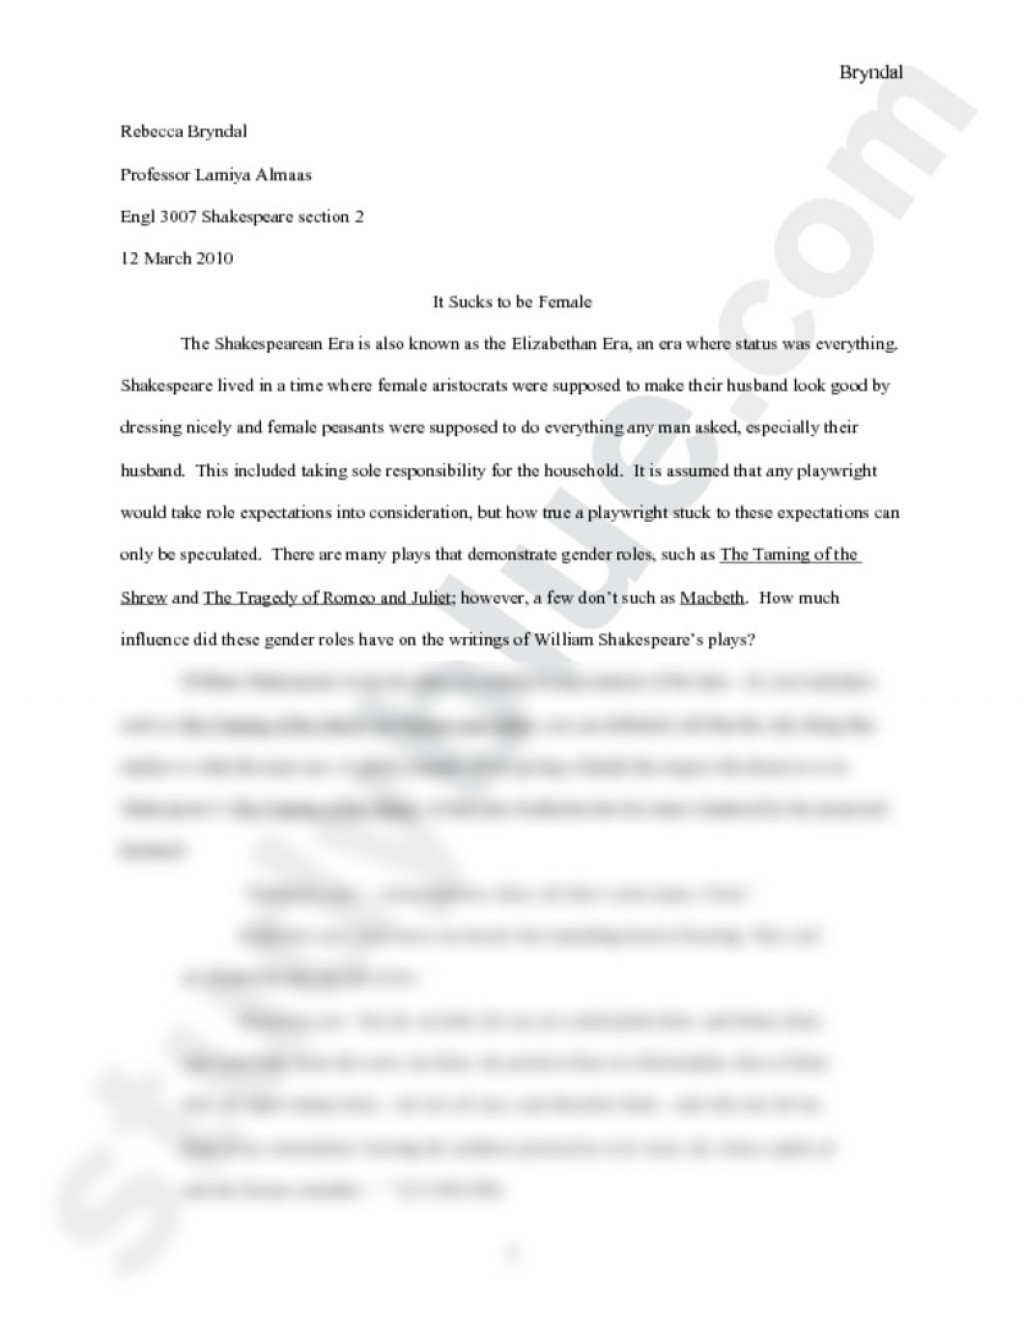 003 Essay Example Page Unforgettable 5 In One Night Research On Respect Large